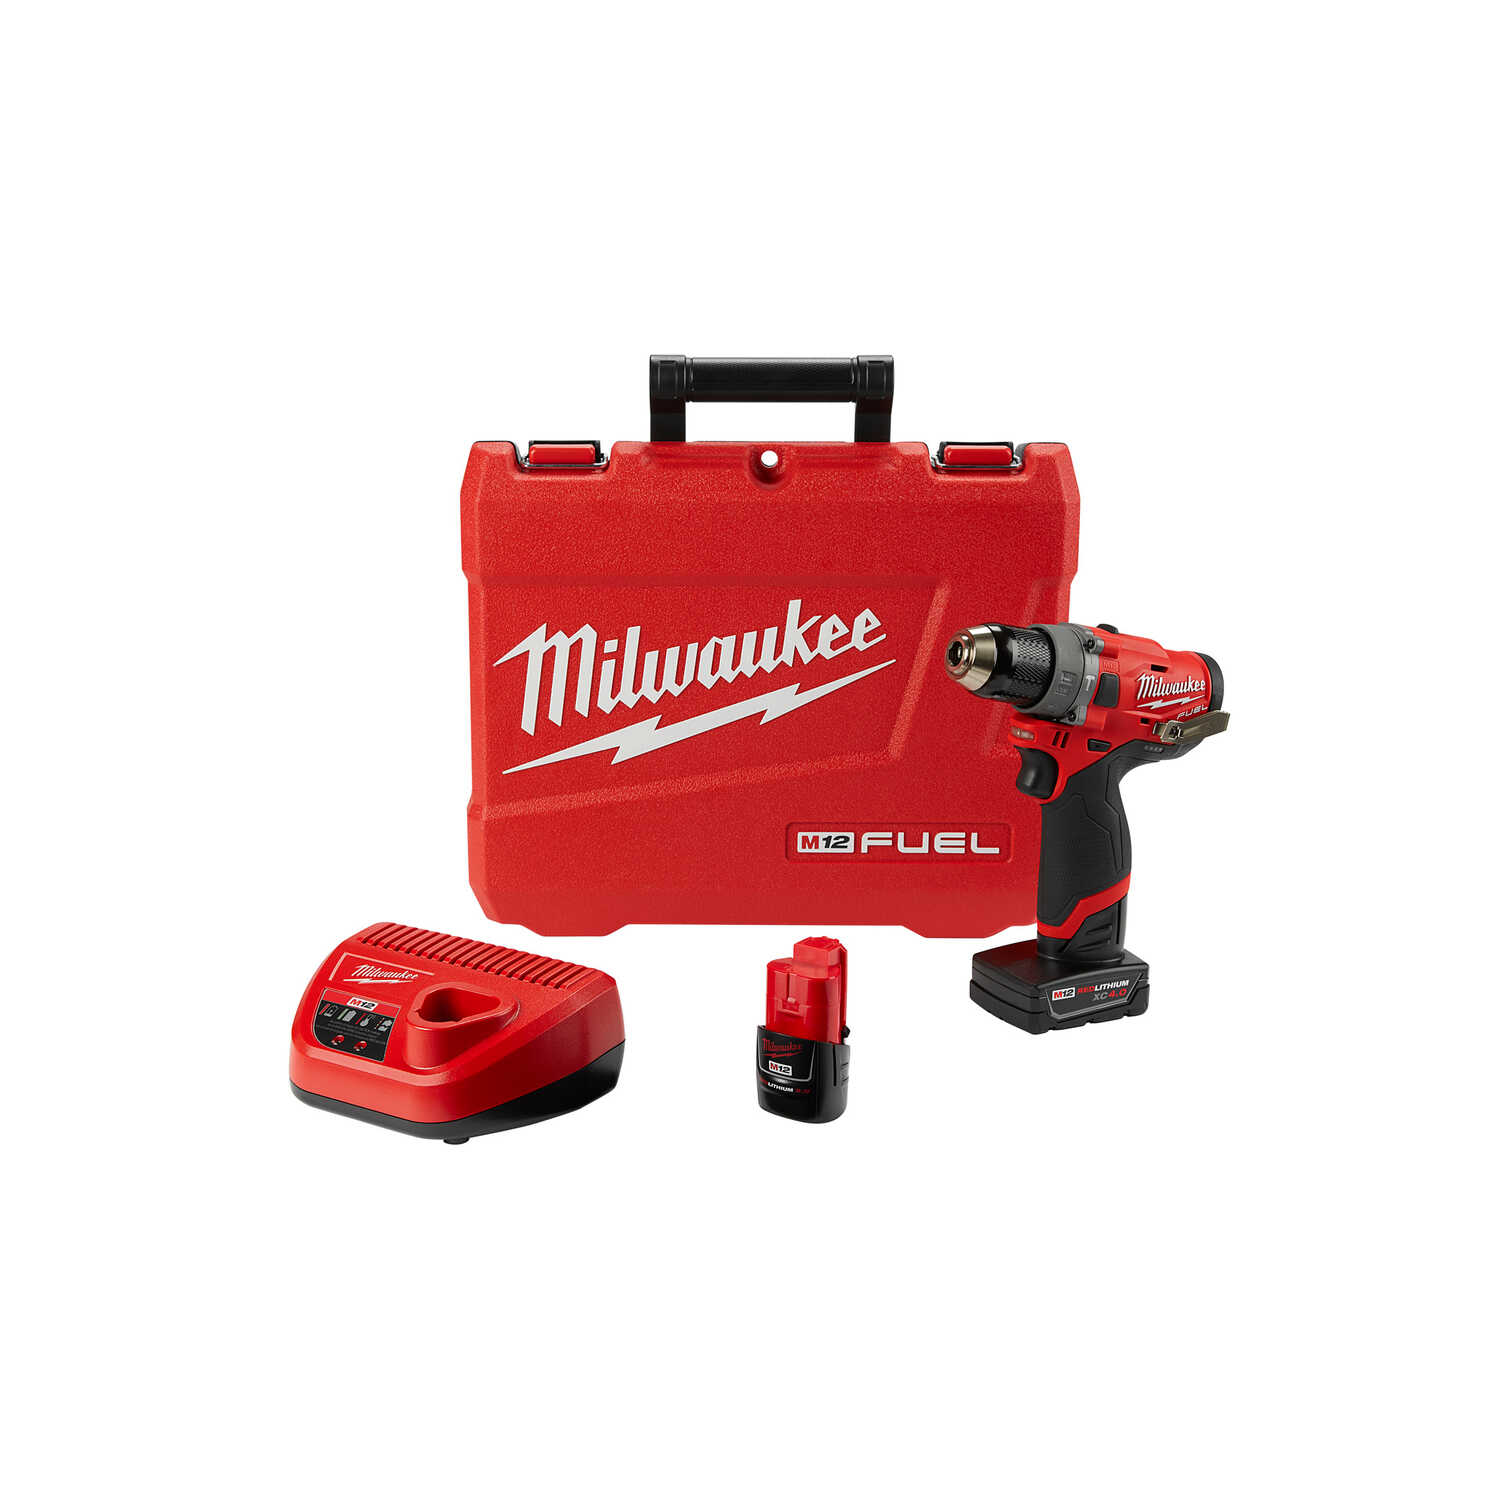 Milwaukee  M12 FUEL  12 volt 1/2 in. Brushless Cordless Hammer Drill/Driver  Kit 25,500 bpm 1700 rpm